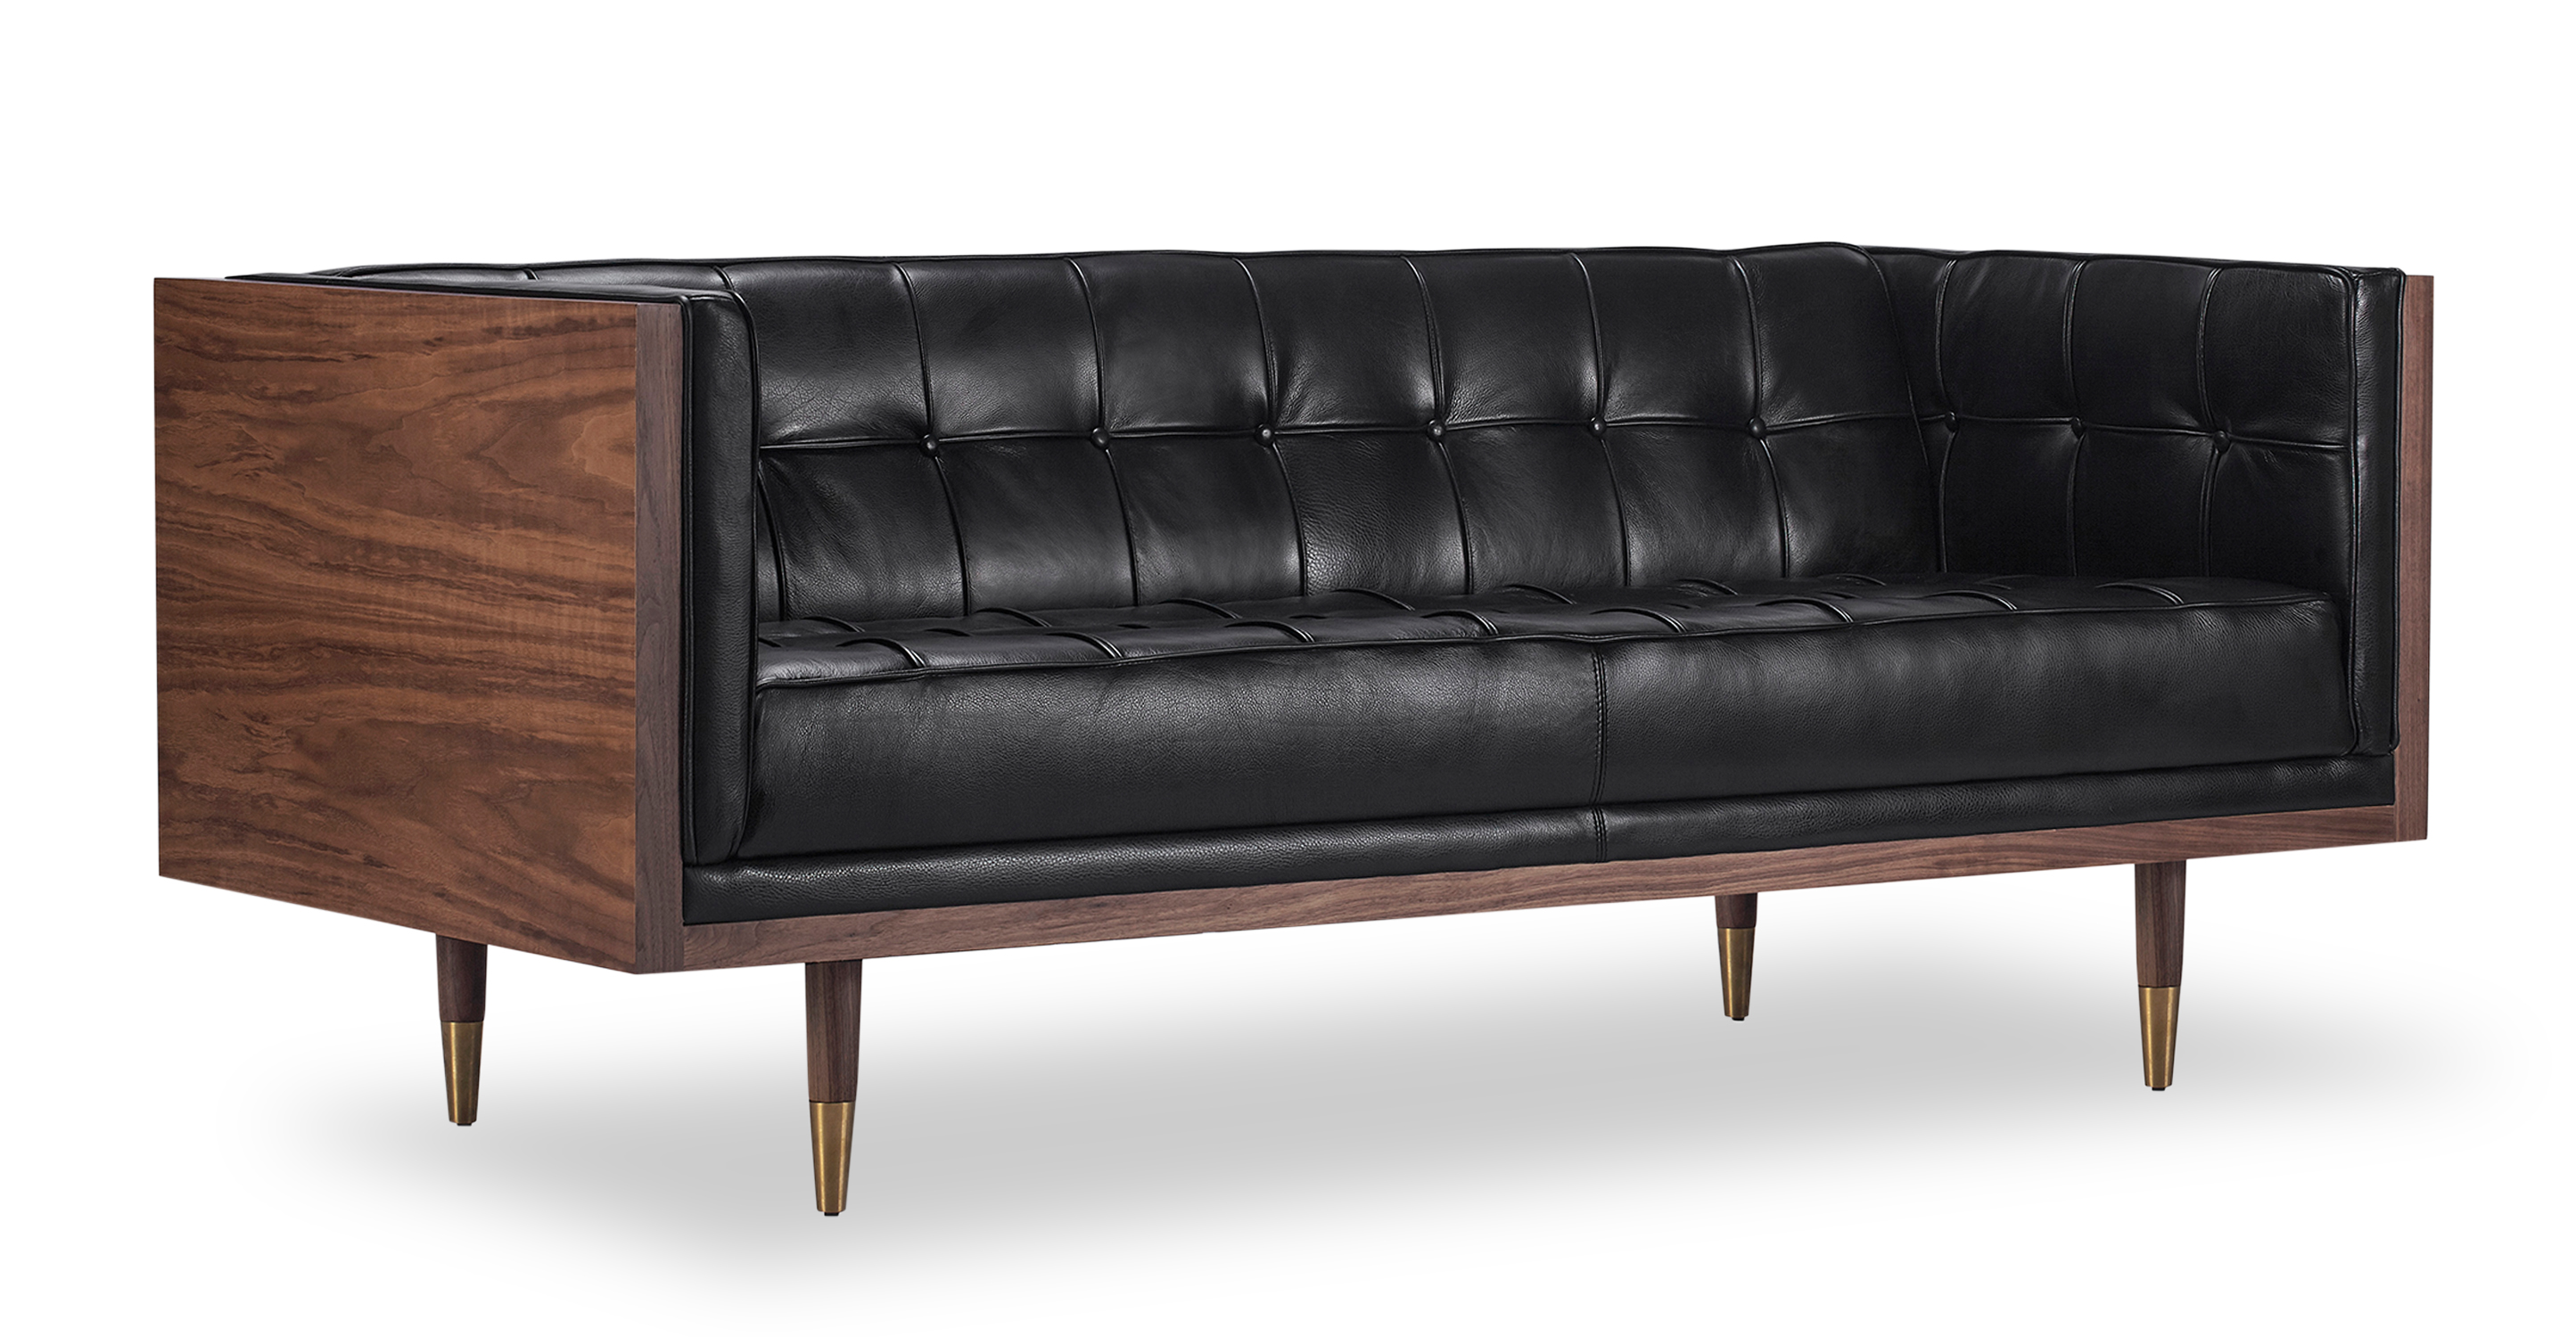 "Woodrow Box 71"" Leather Sofa, Walnut/Black Aniline"